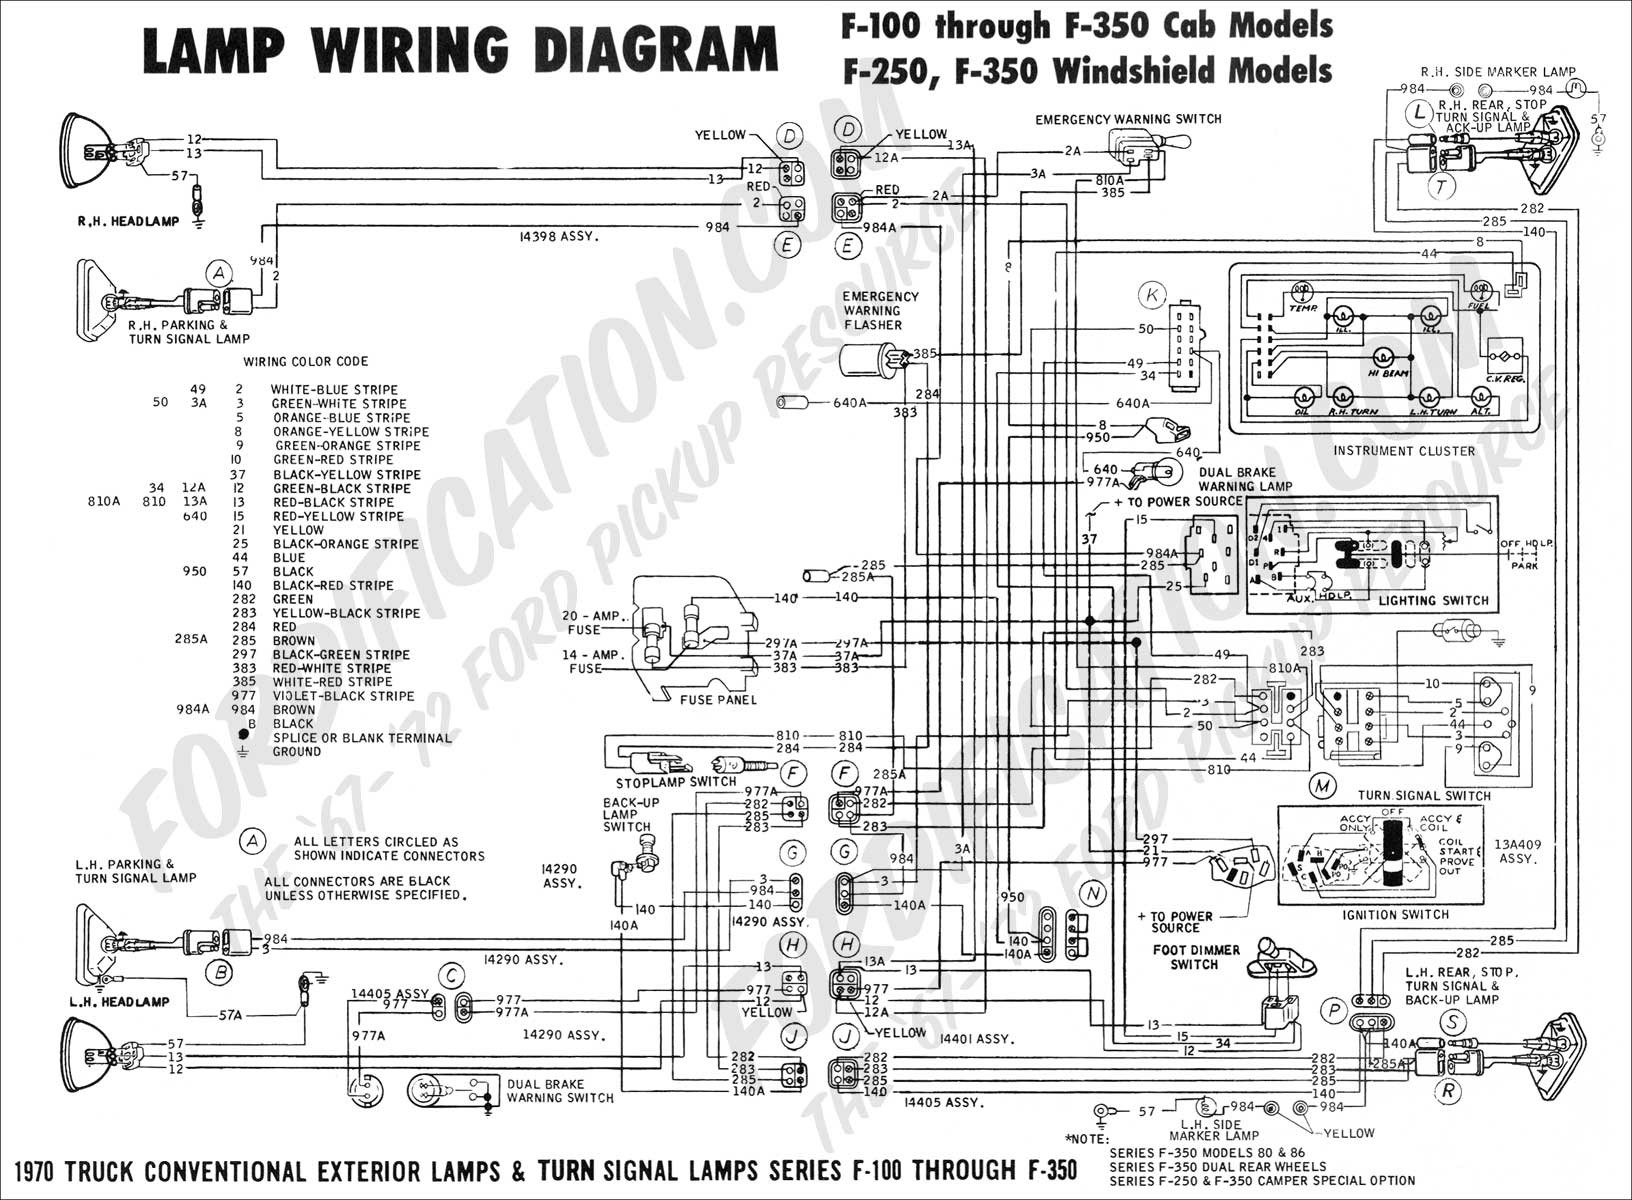 wiring diagram for 2001 ford f250 example electrical wiring diagram u2022 rh olkha co